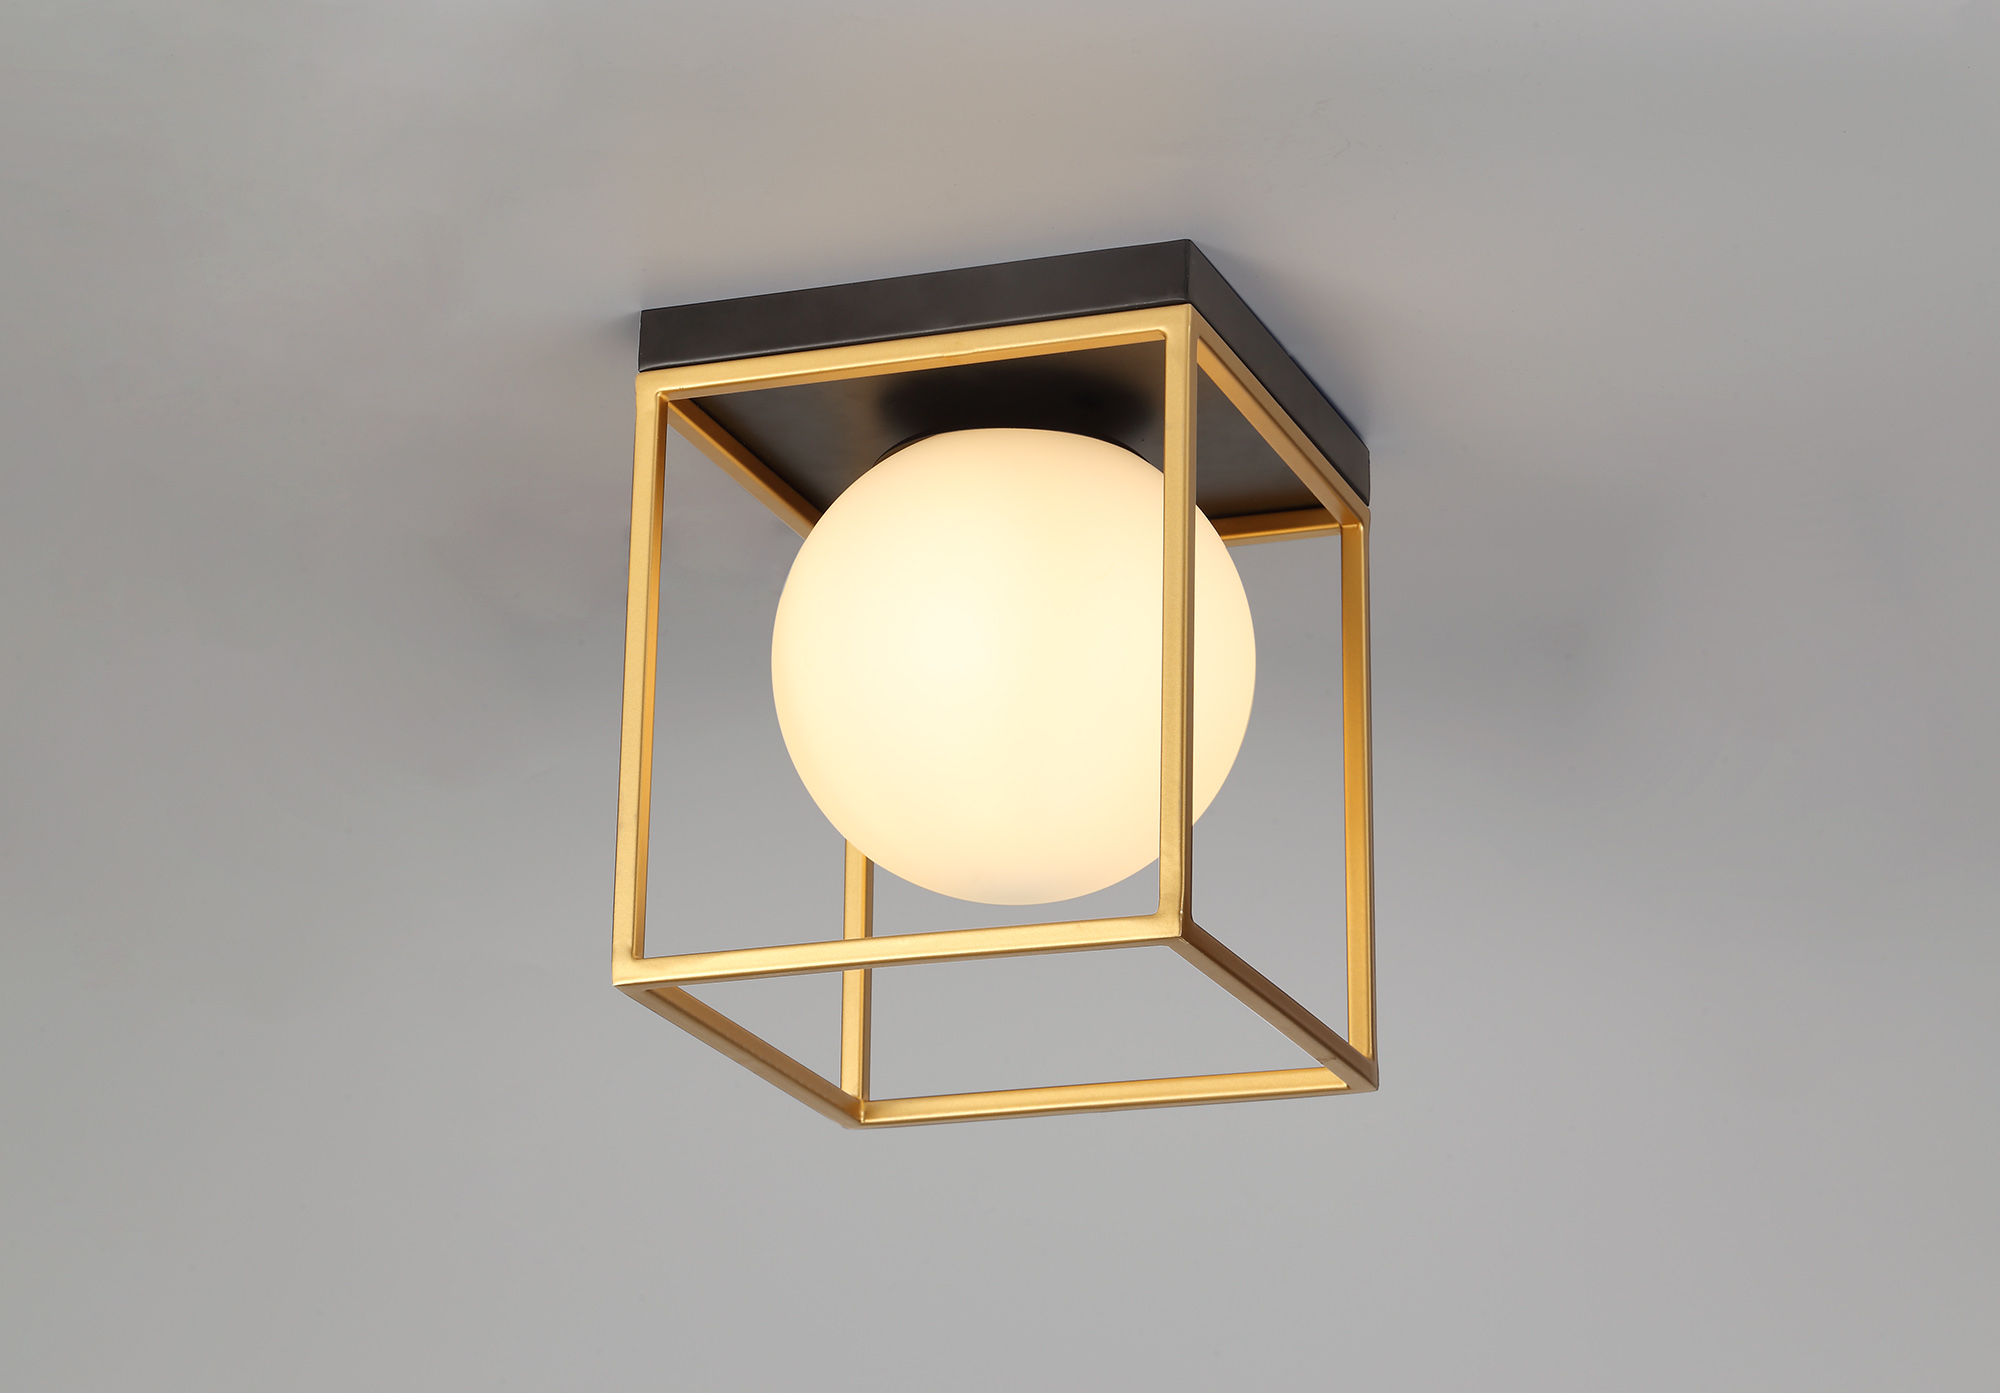 Square Ceiling Flush, 1 Light E14, Matt Black/Painted Gold